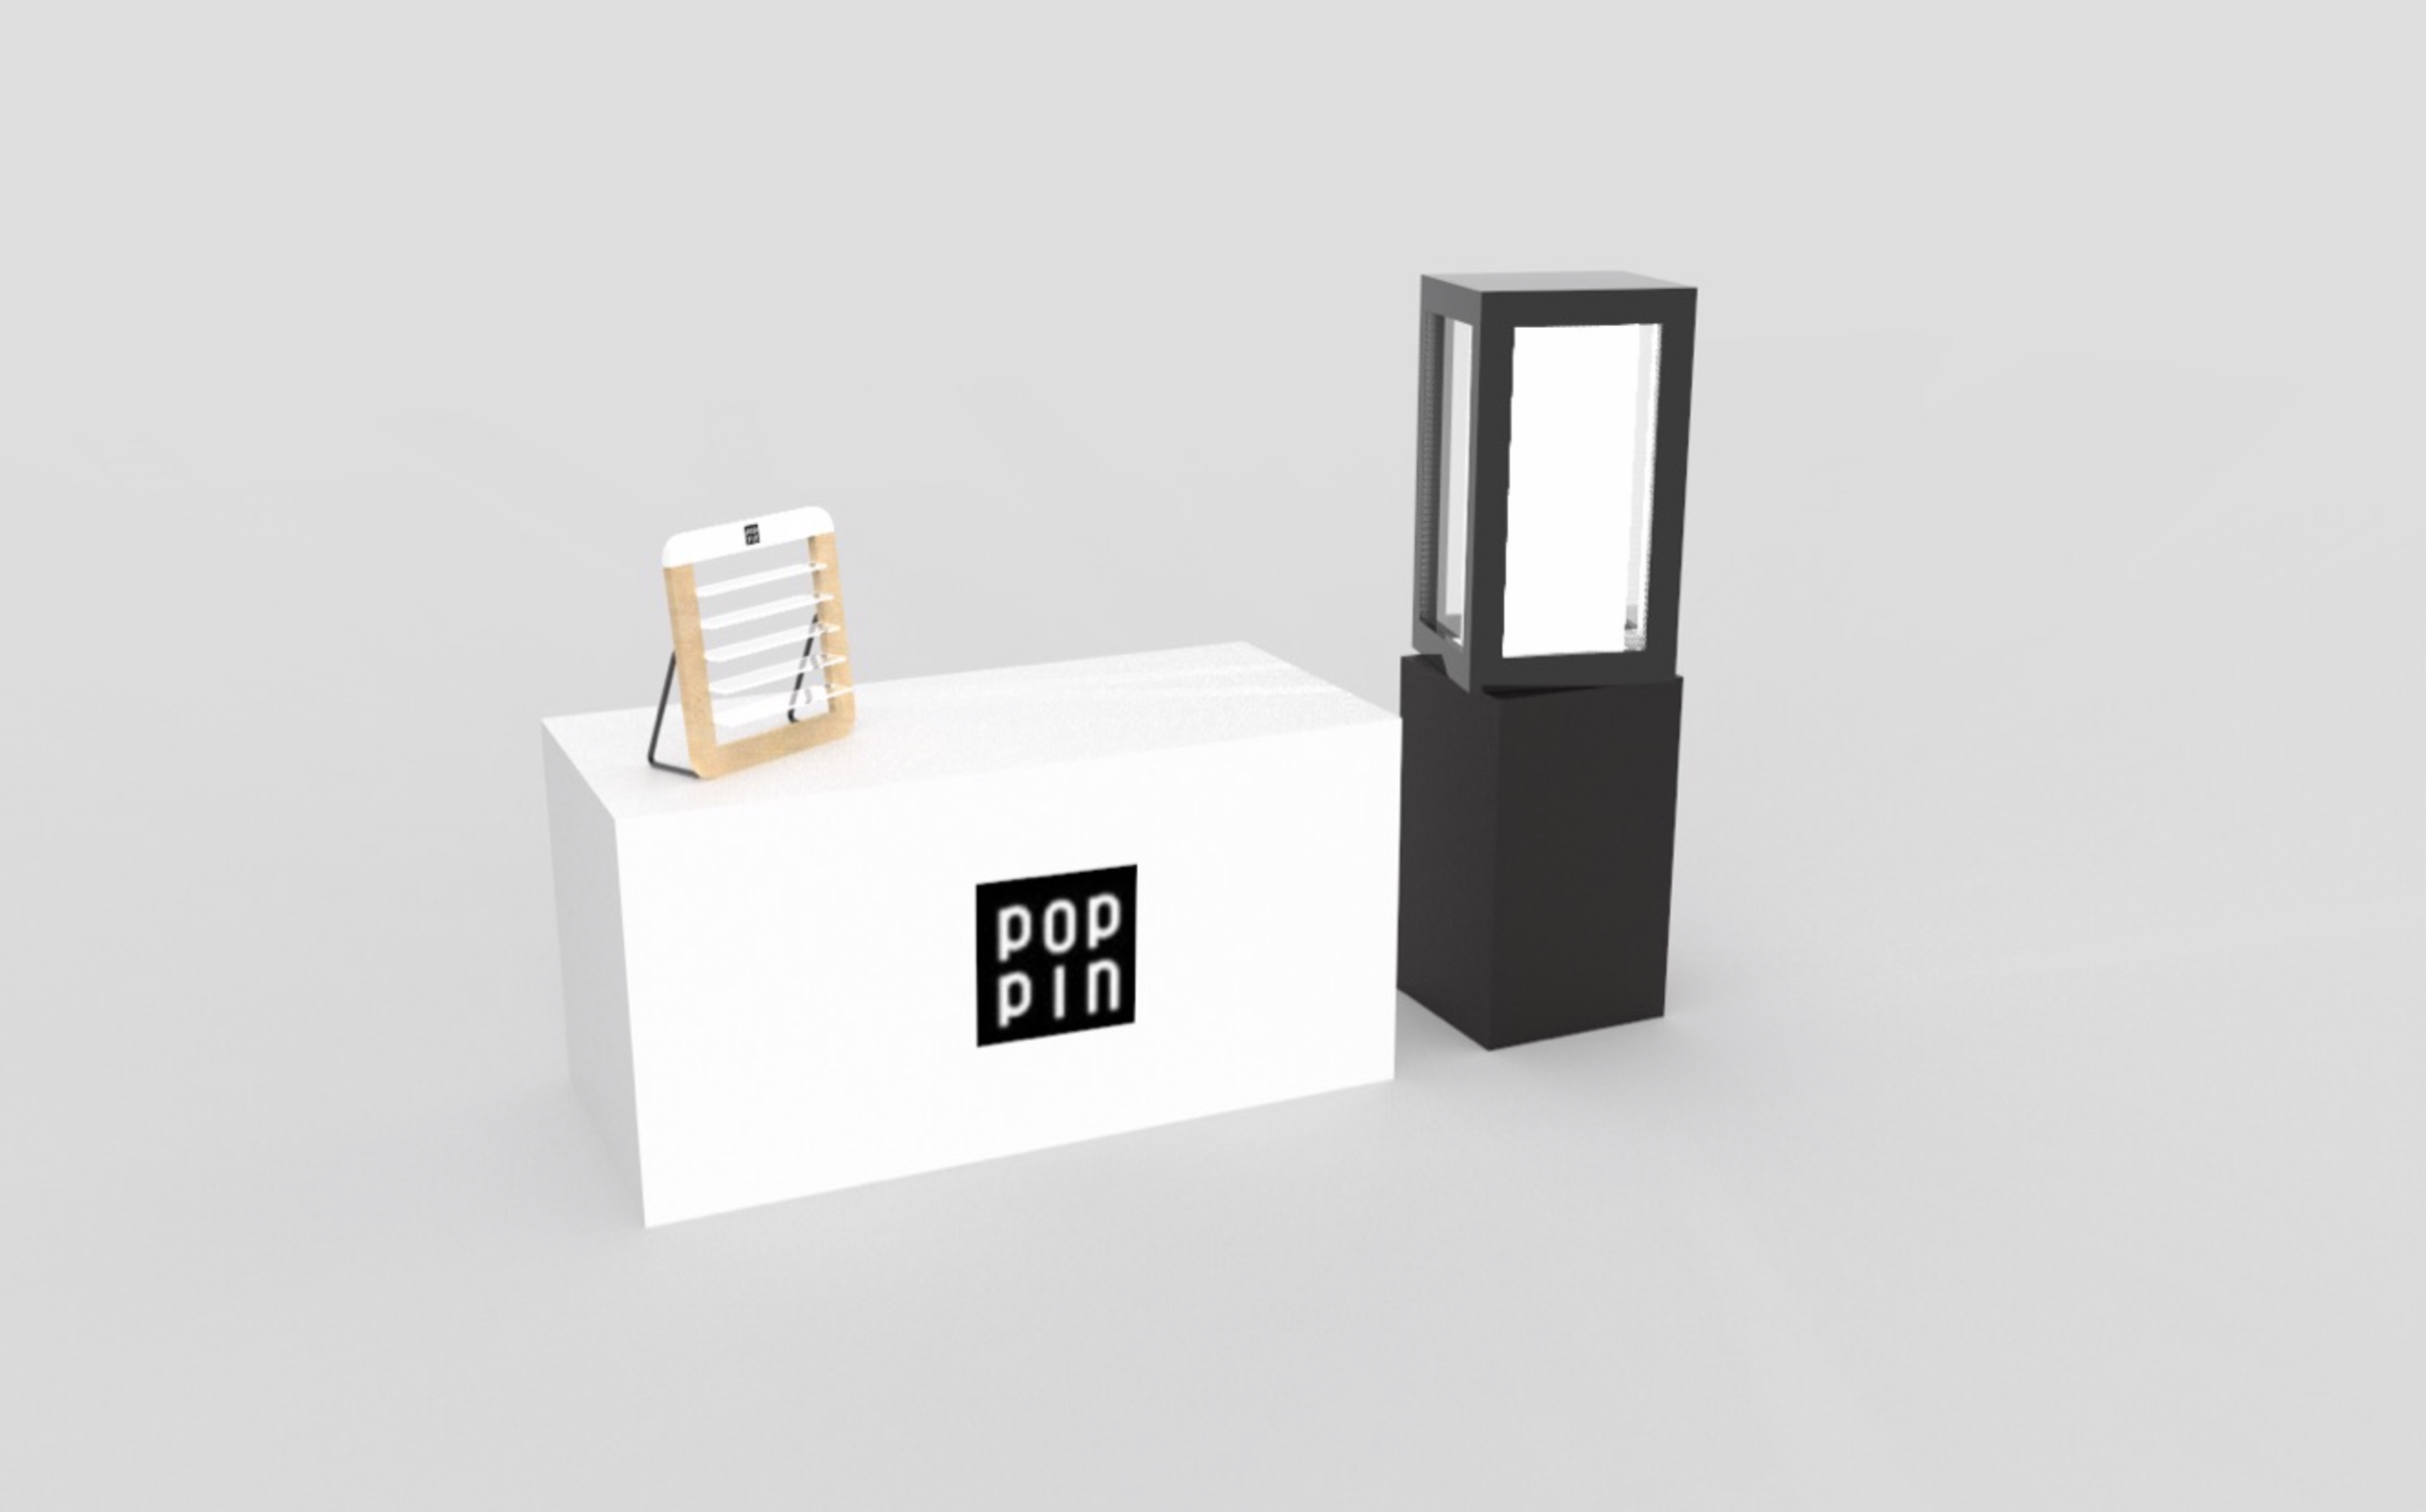 KEYSHOT RENDERING OF EVENT BOOTH — DESIGNED AND RENDERED BY DINO LAUANDO